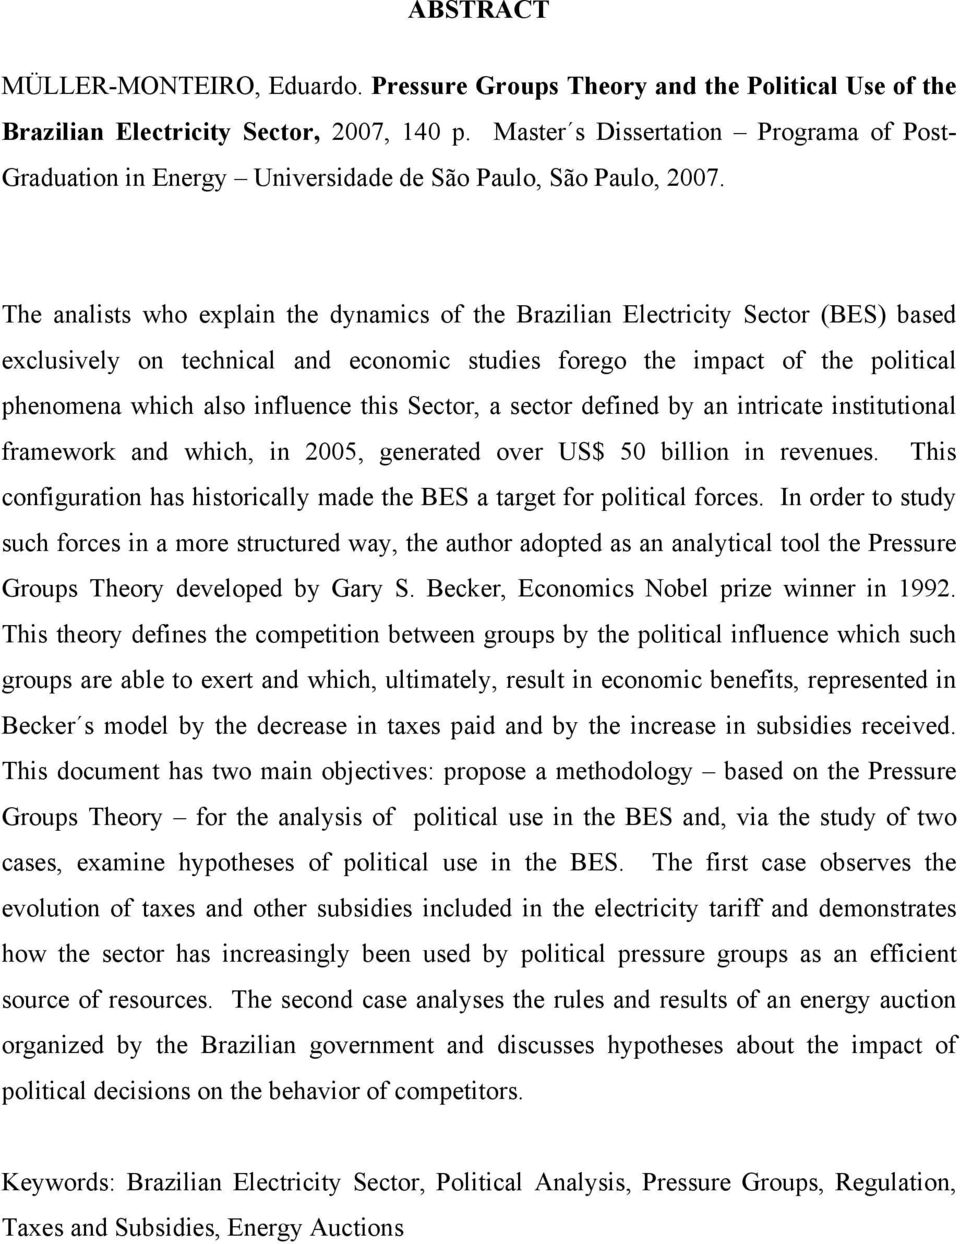 The analists who explain the dynamics of the Brazilian Electricity Sector (BES) based exclusively on technical and economic studies forego the impact of the political phenomena which also influence